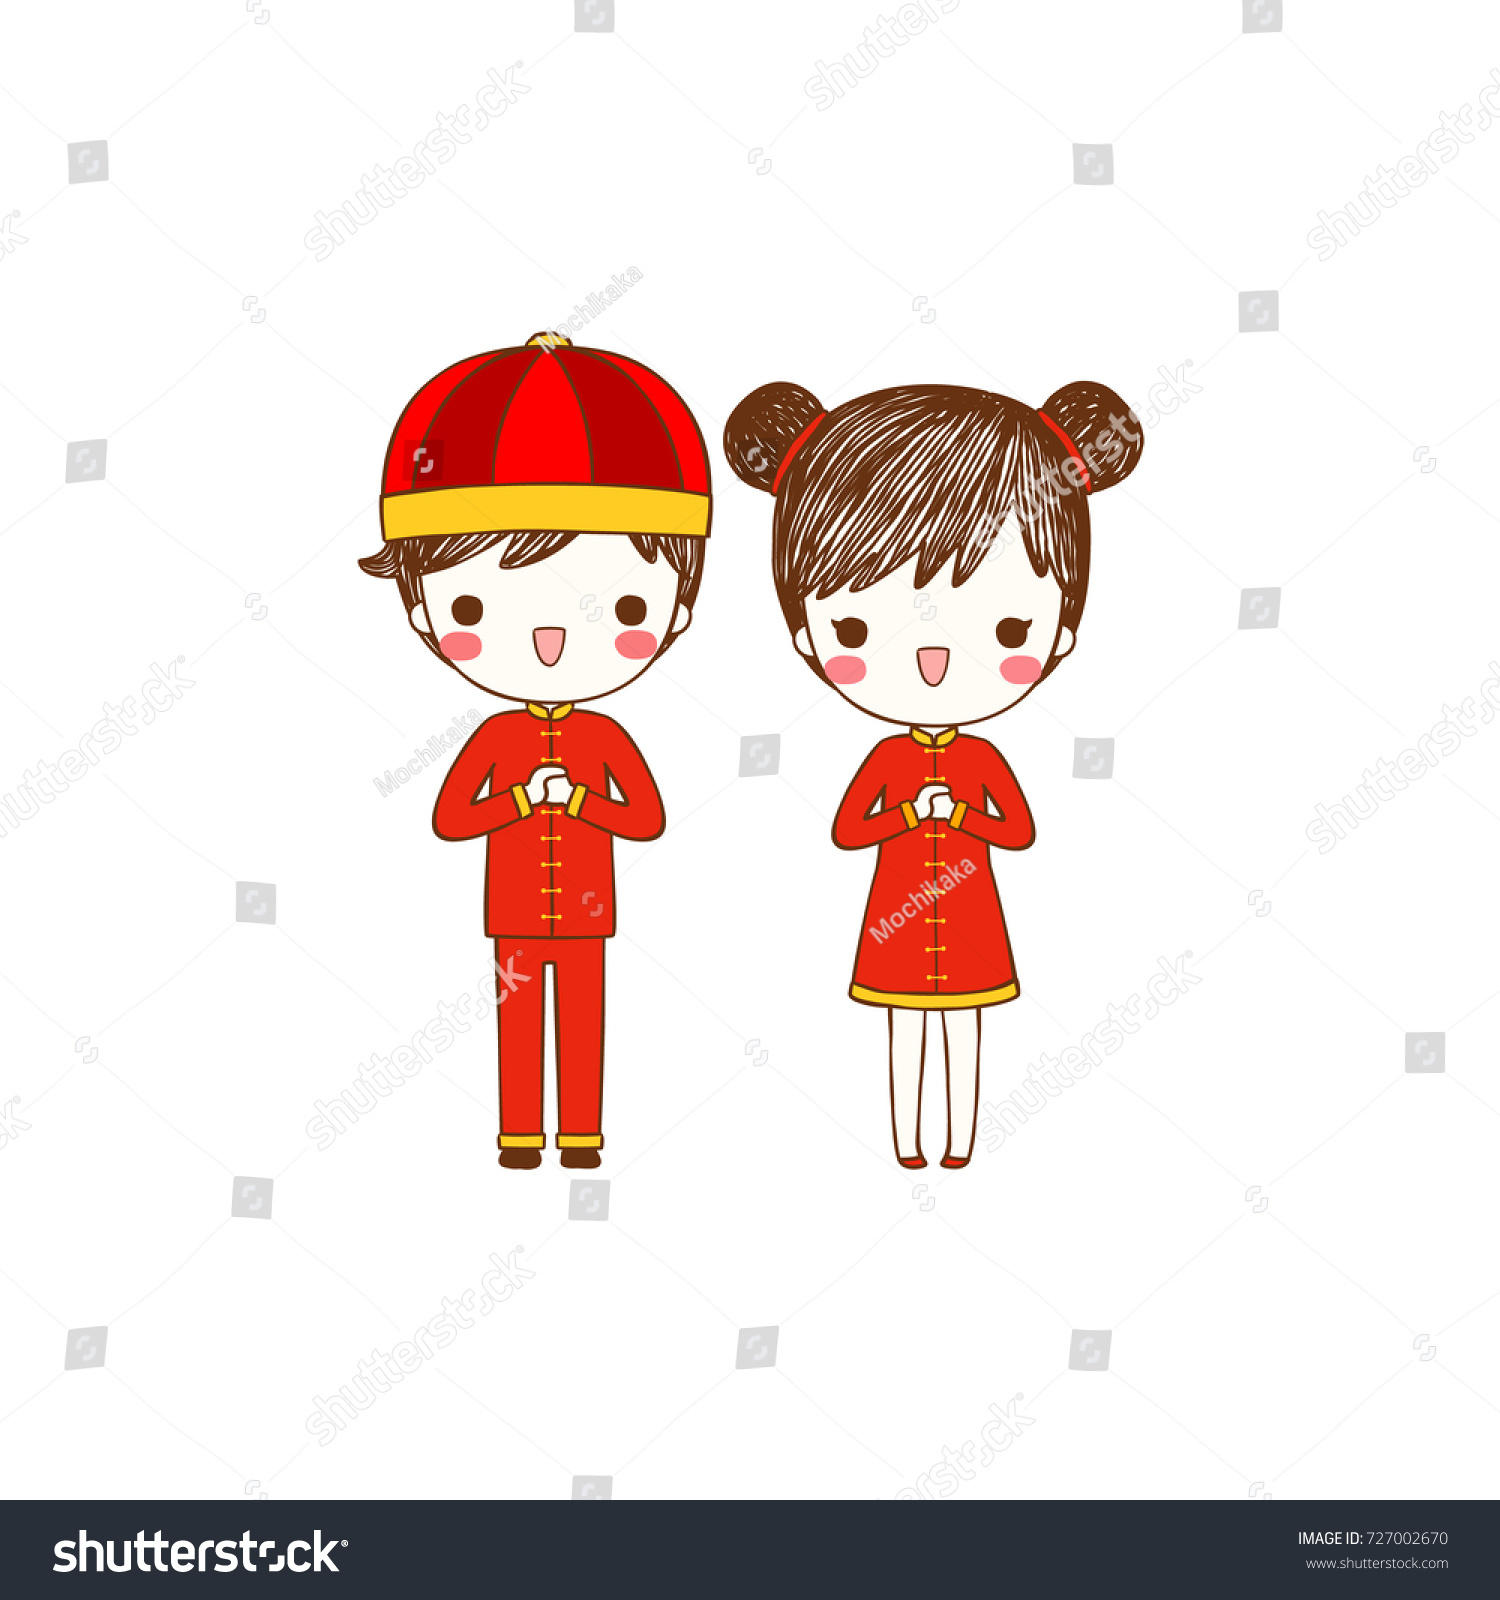 happy chinese new year 2018 with cute cartoon boy and girl in traditional chinese clothes